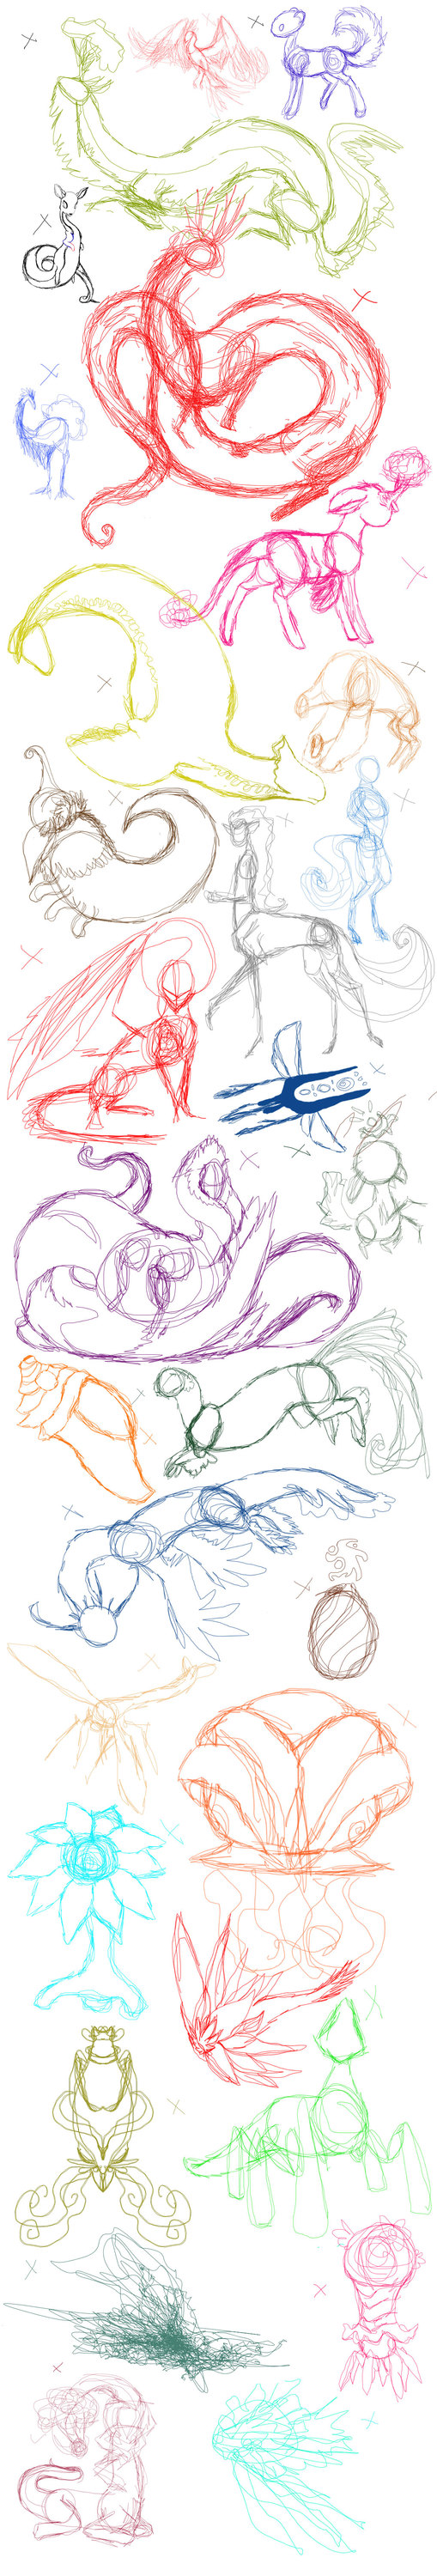 Pile of concepts